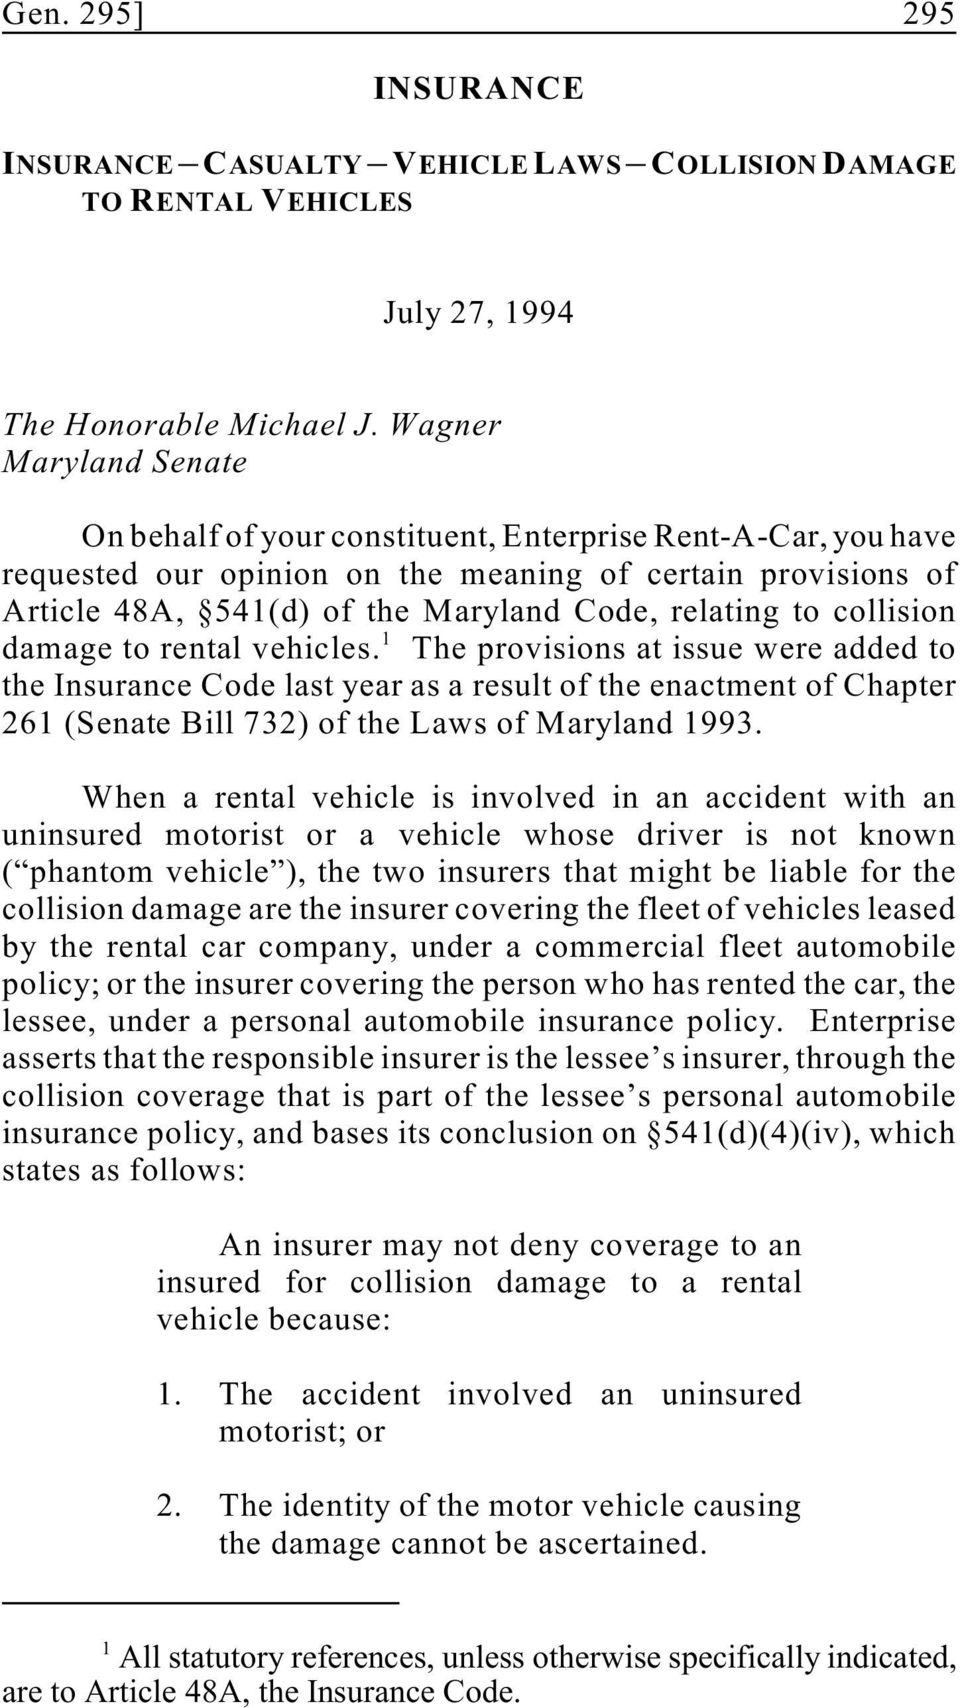 to collision 1 damage to rental vehicles. The provisions at issue were added to the Insurance Code last year as a result of the enactment of Chapter 261 (Senate Bill 732) of the Laws of Maryland 1993.